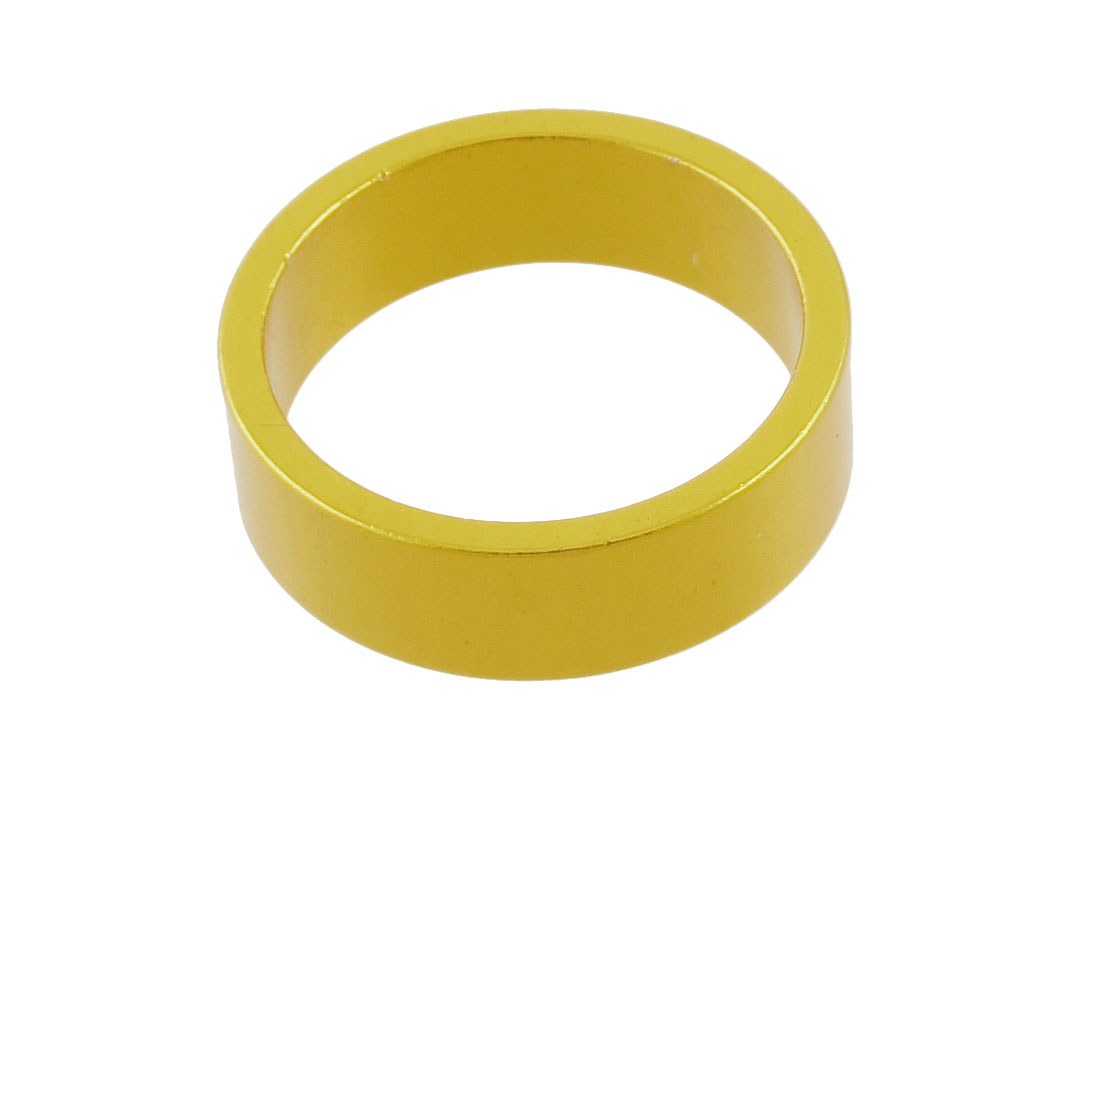 "Gold Tone 1.33"" x 1.1"" x 0.4"" Ring Alloy Washer Gasket"